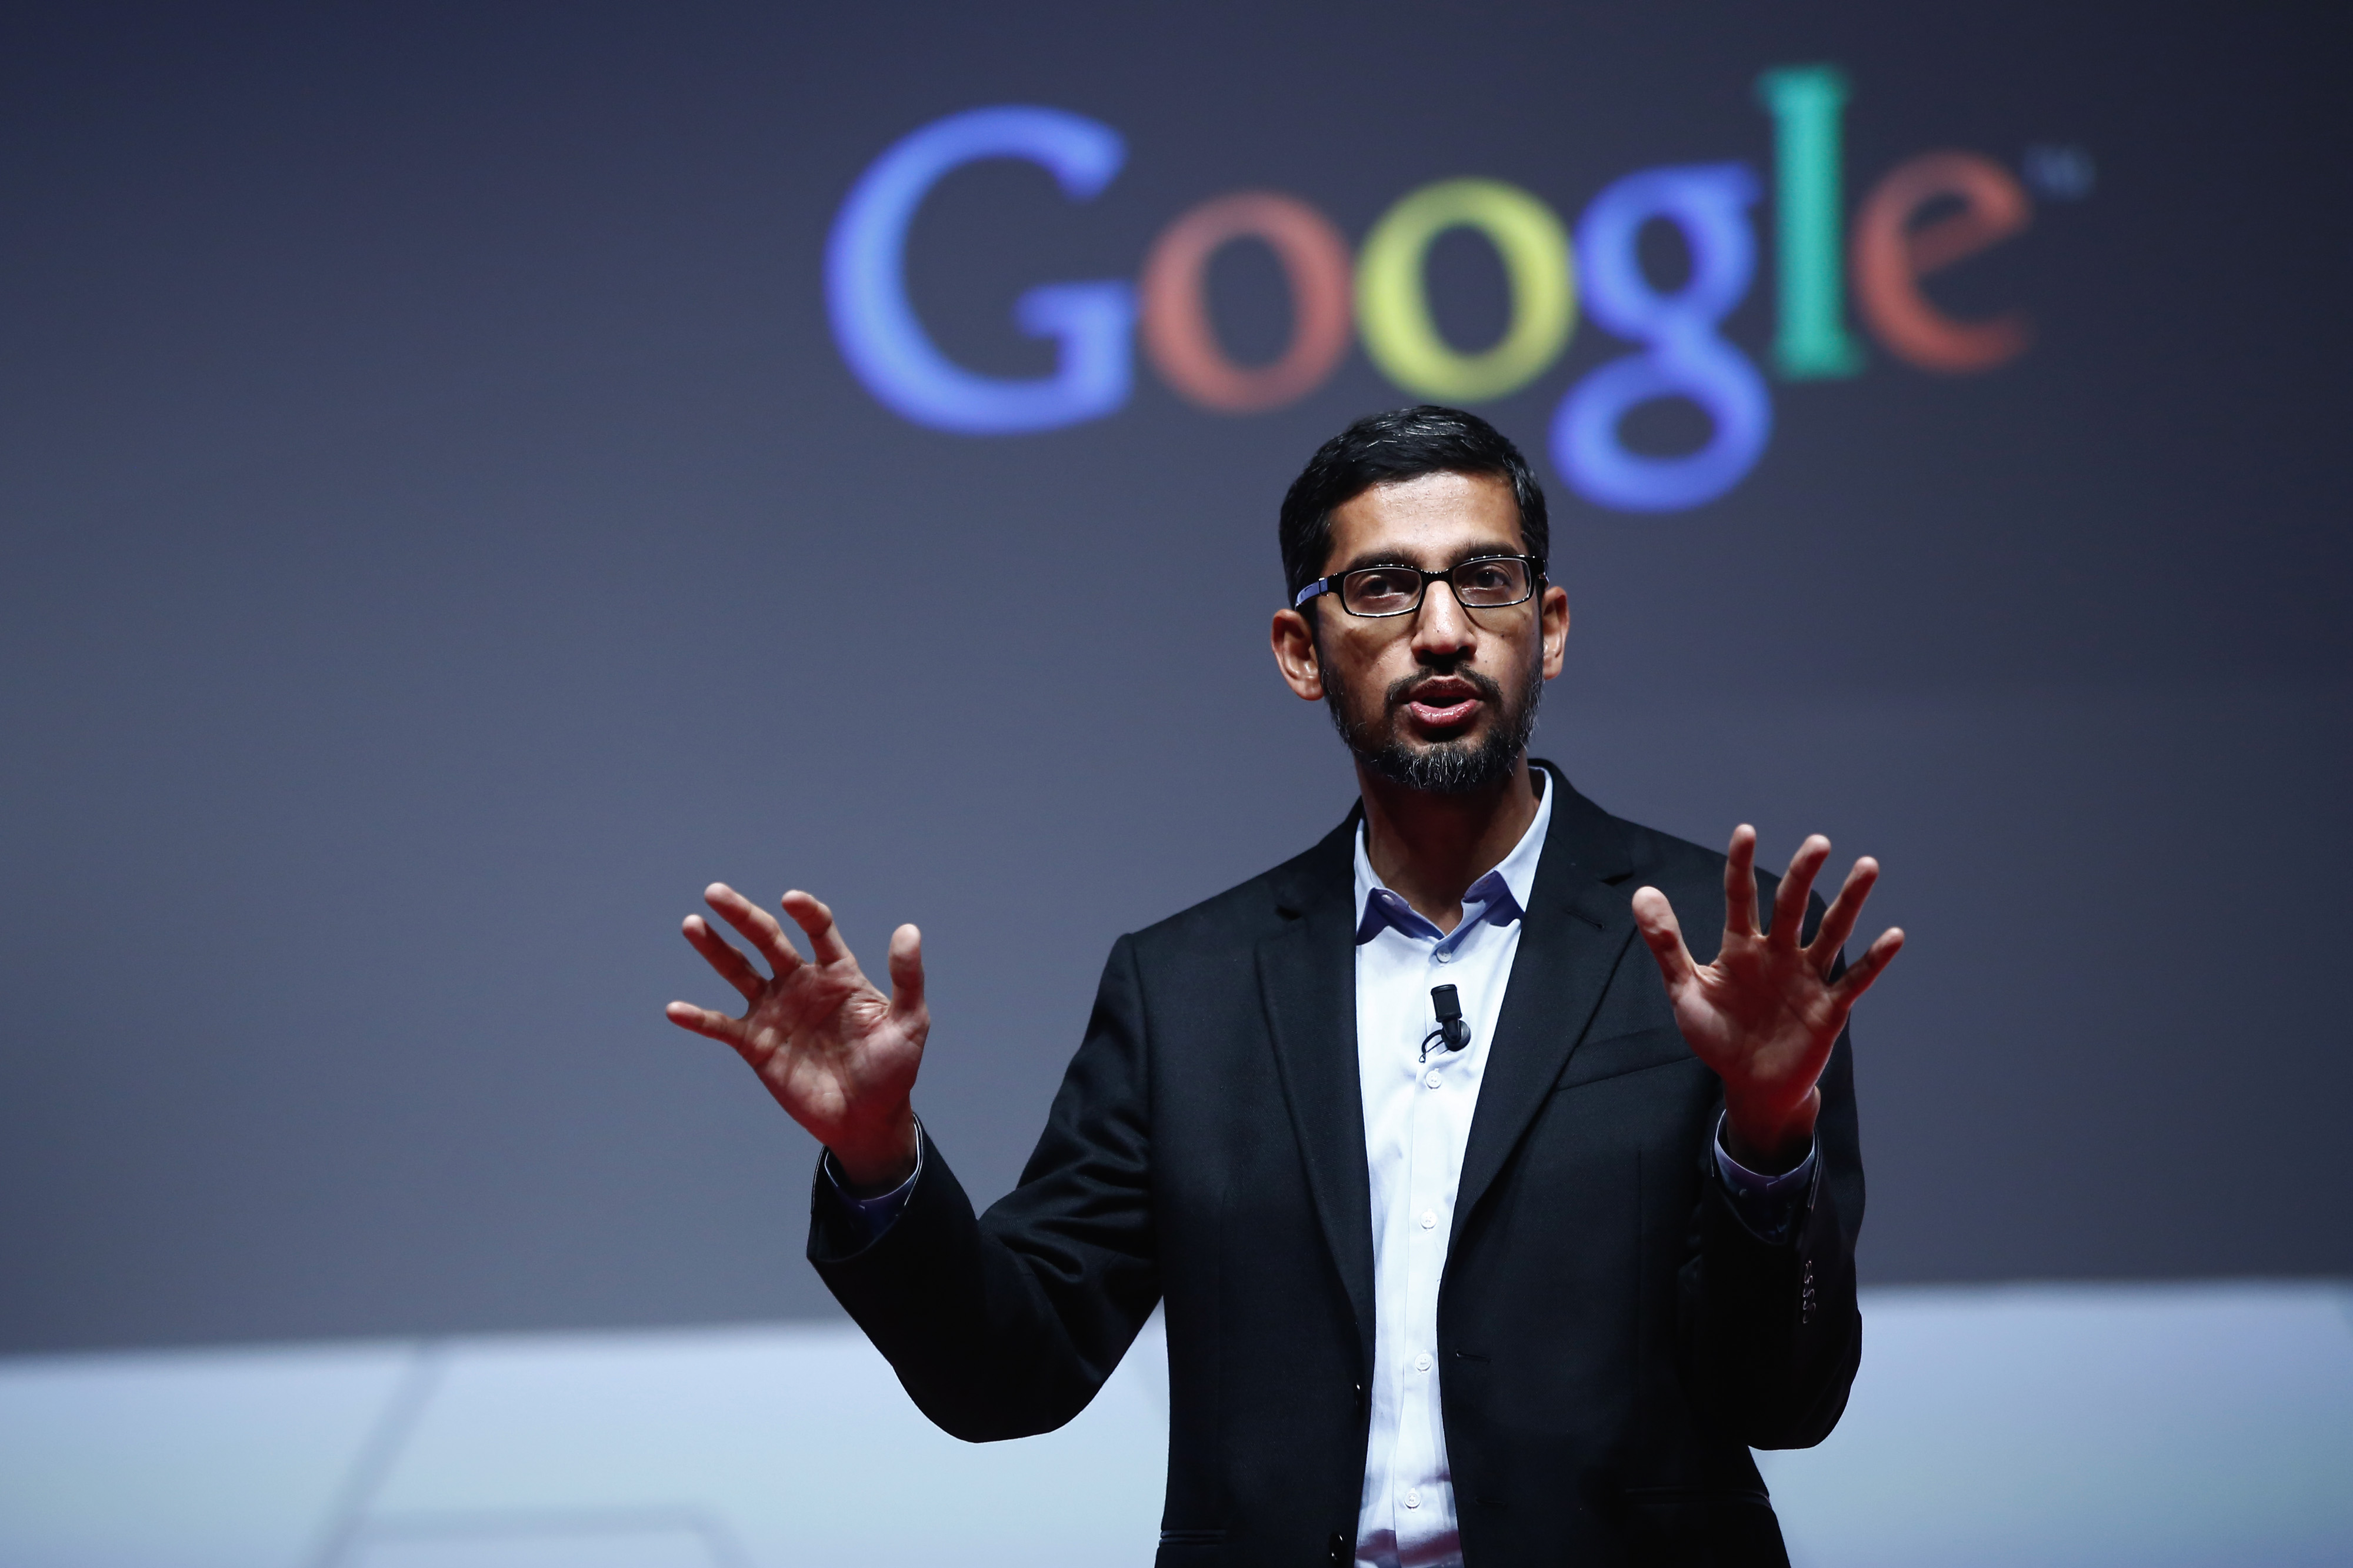 Sundar Pichai, senior vice president of Android, Chrome and Apps at Google Inc., speaks during a keynote session at the Mobile World Congress in Barcelona, Spain, on Monday, March 2, 2015.